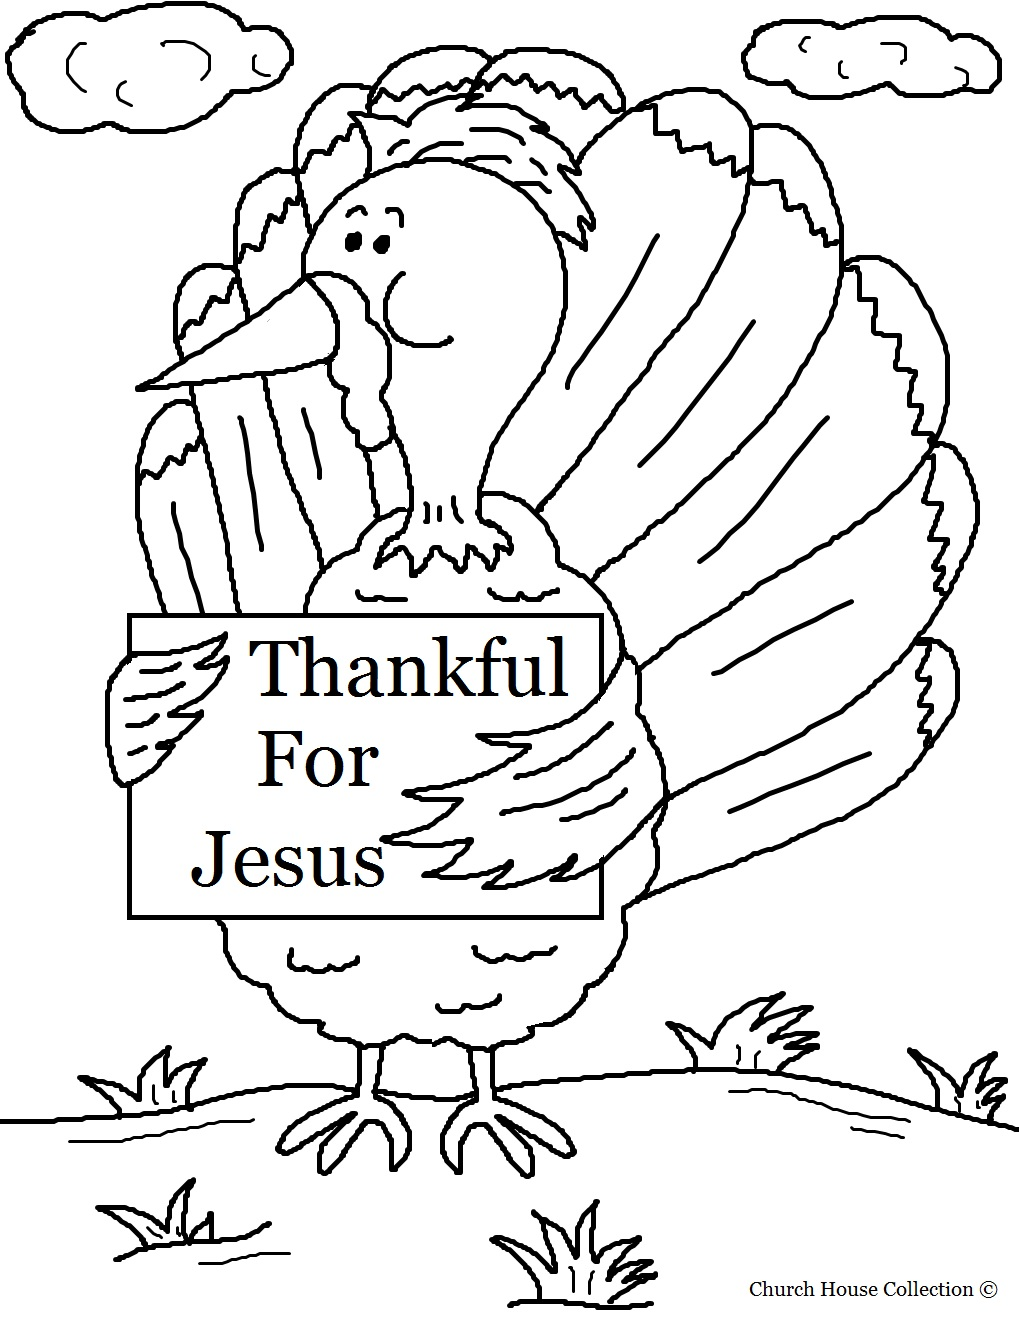 thanksgiving coloring pages religious creation - photo#12